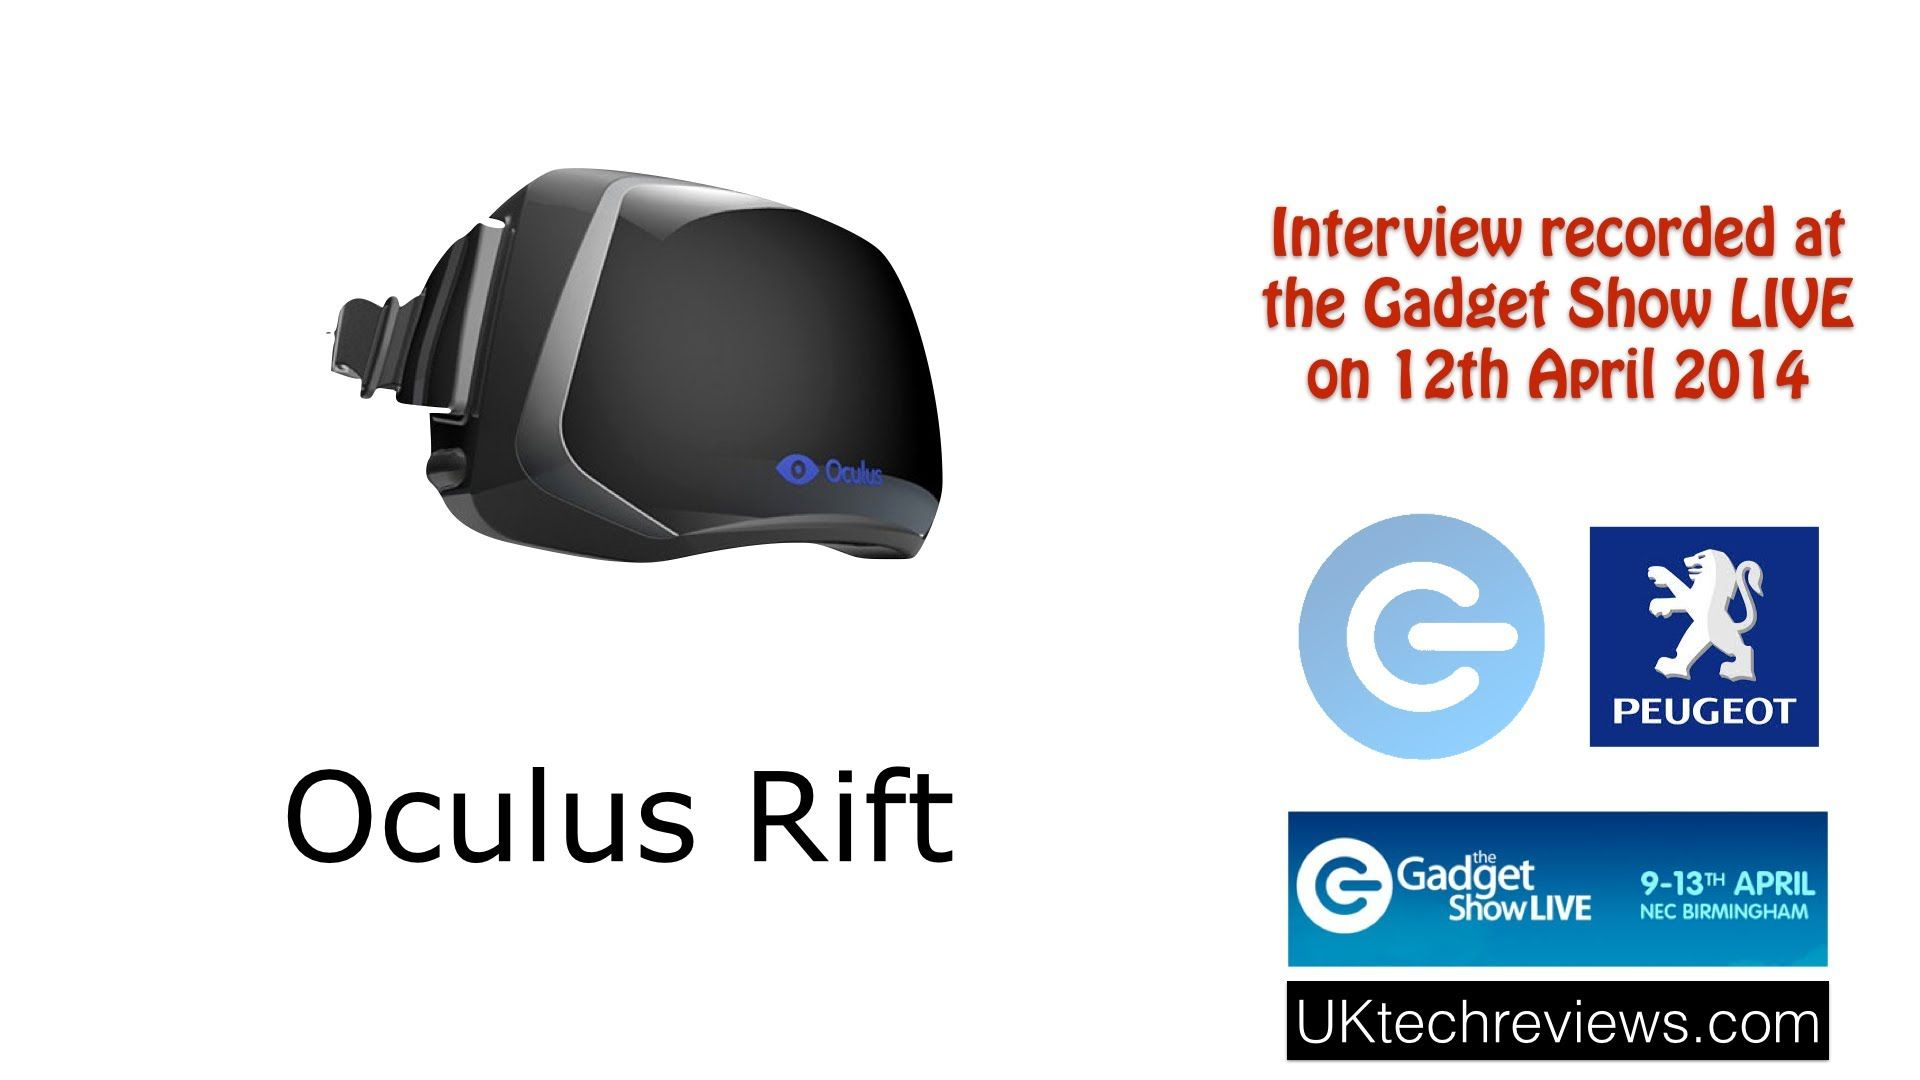 Gadget Show Live 2014 - interview with Oculus Rift and